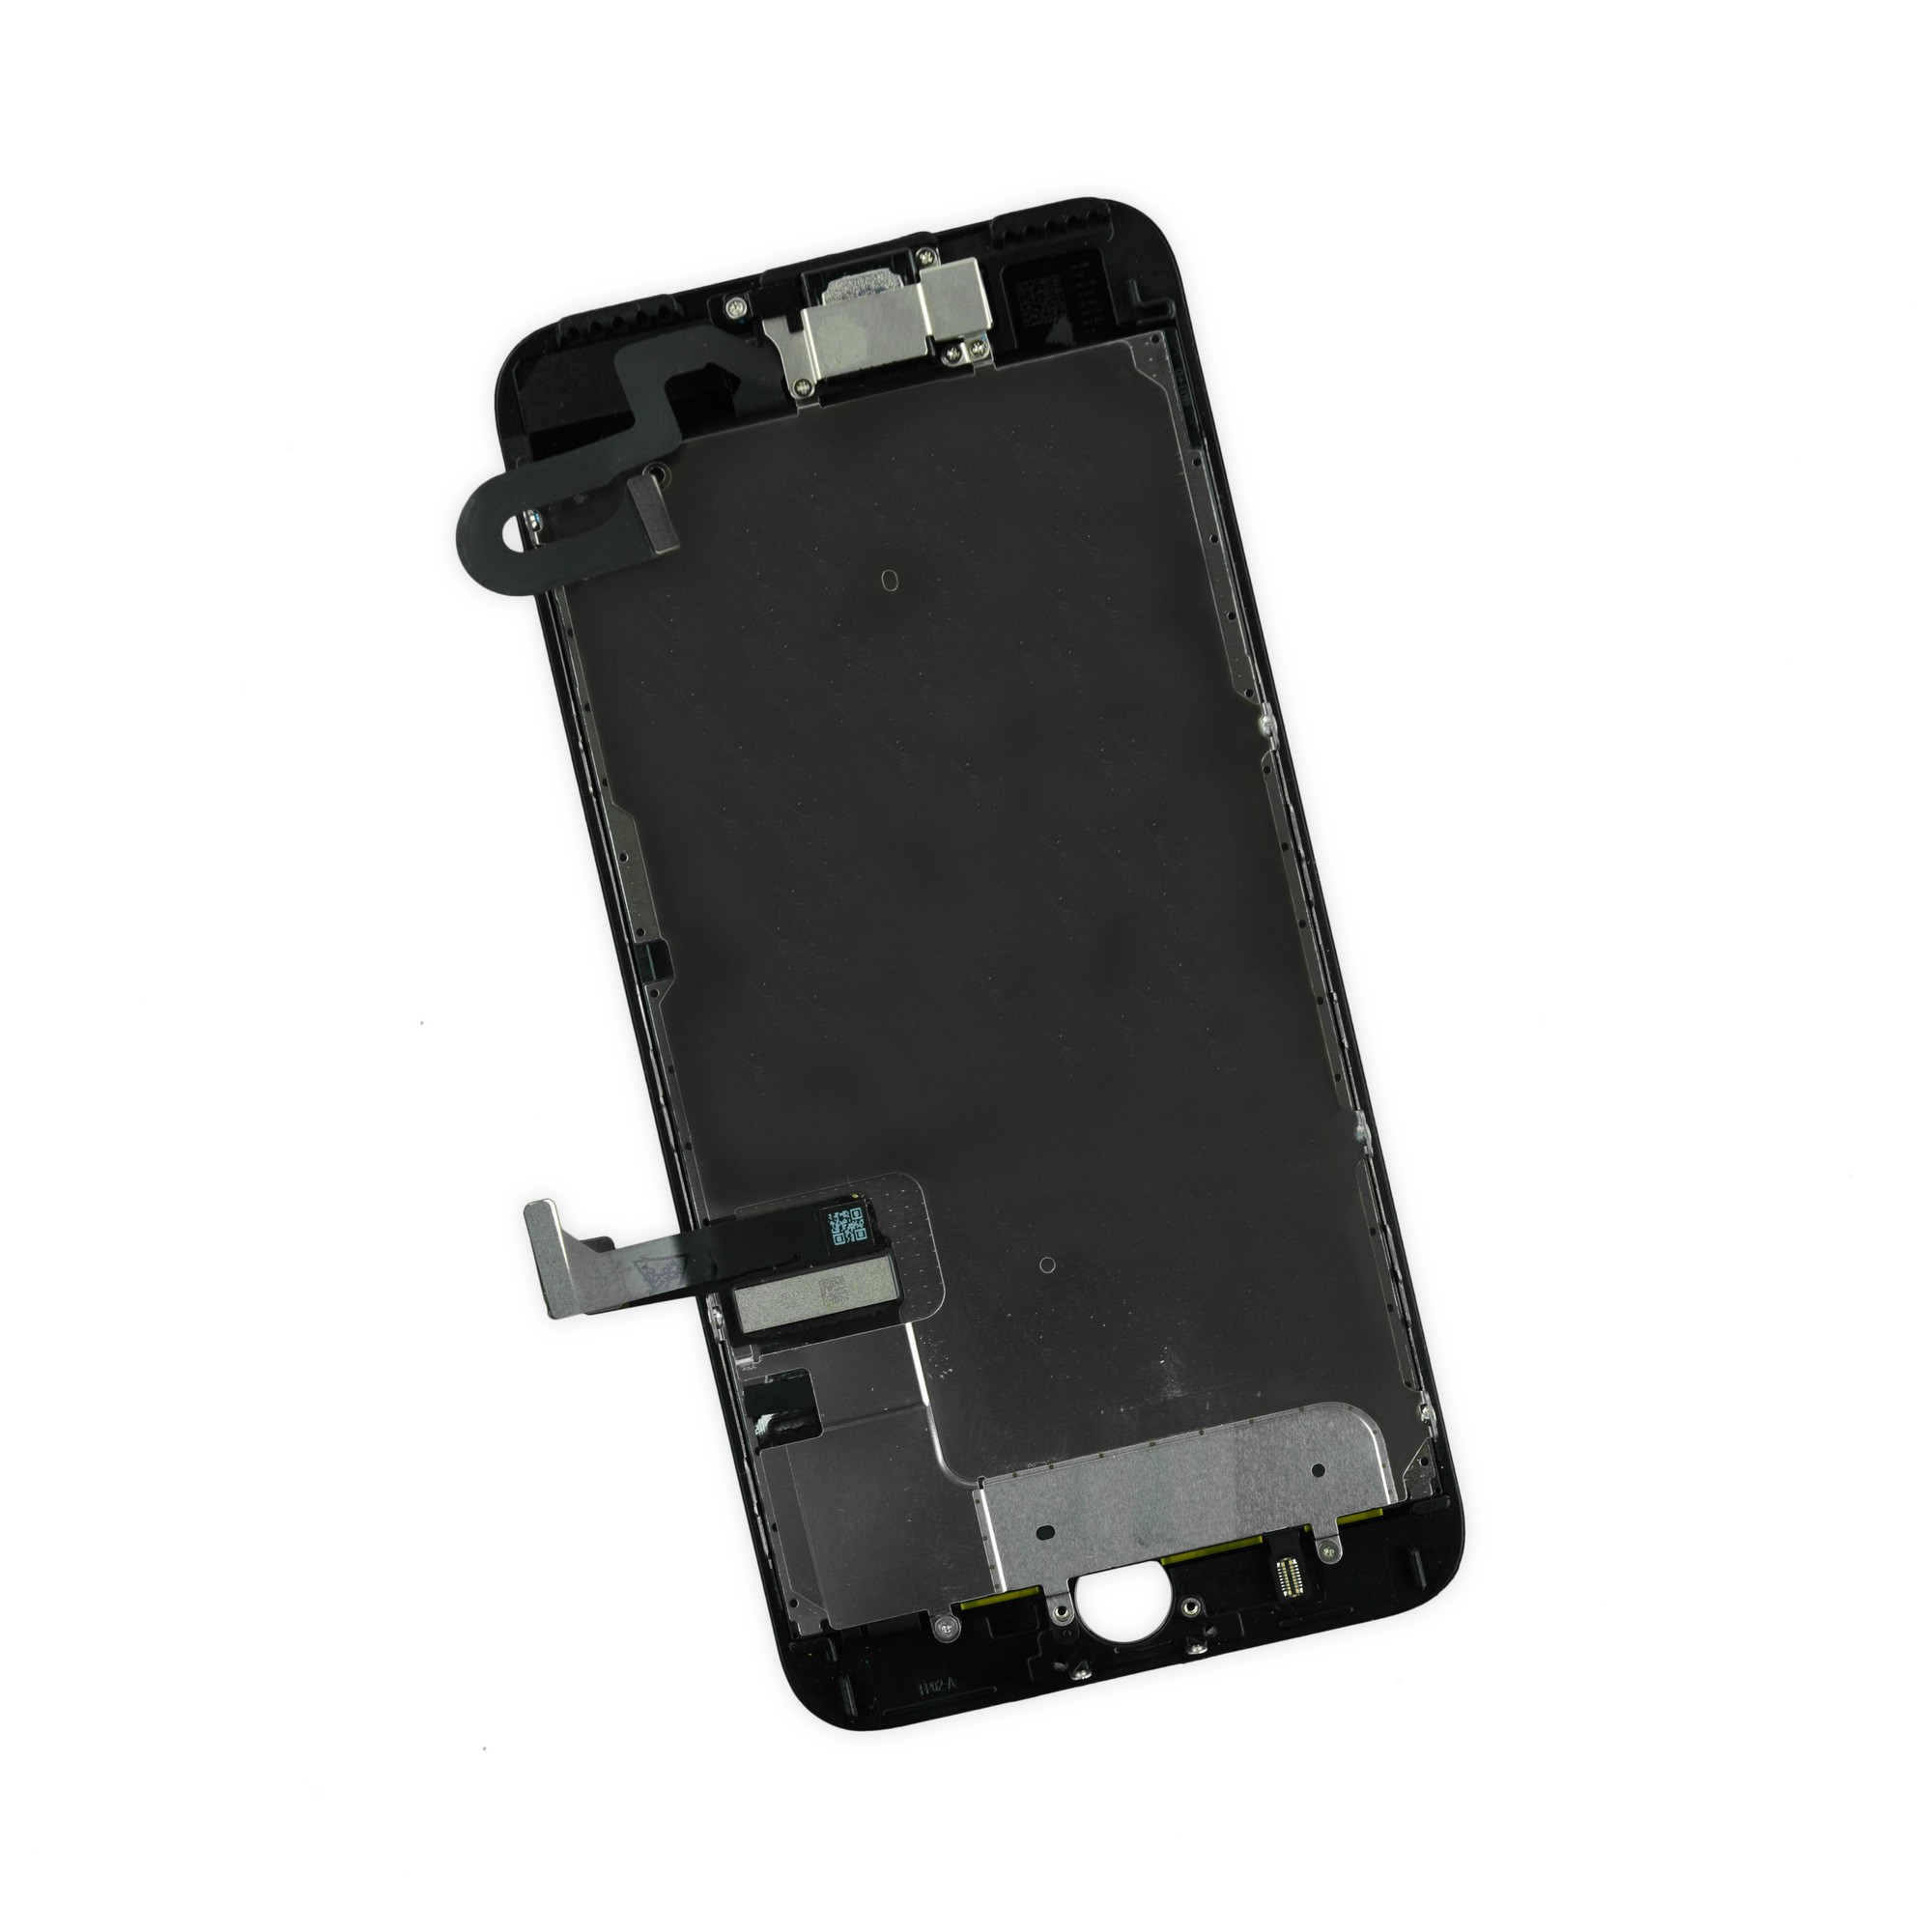 iPhone 7 Plus LCD Screen and Digitizer Full Assembly, New, Fix Kit - Black, IF333-038-3